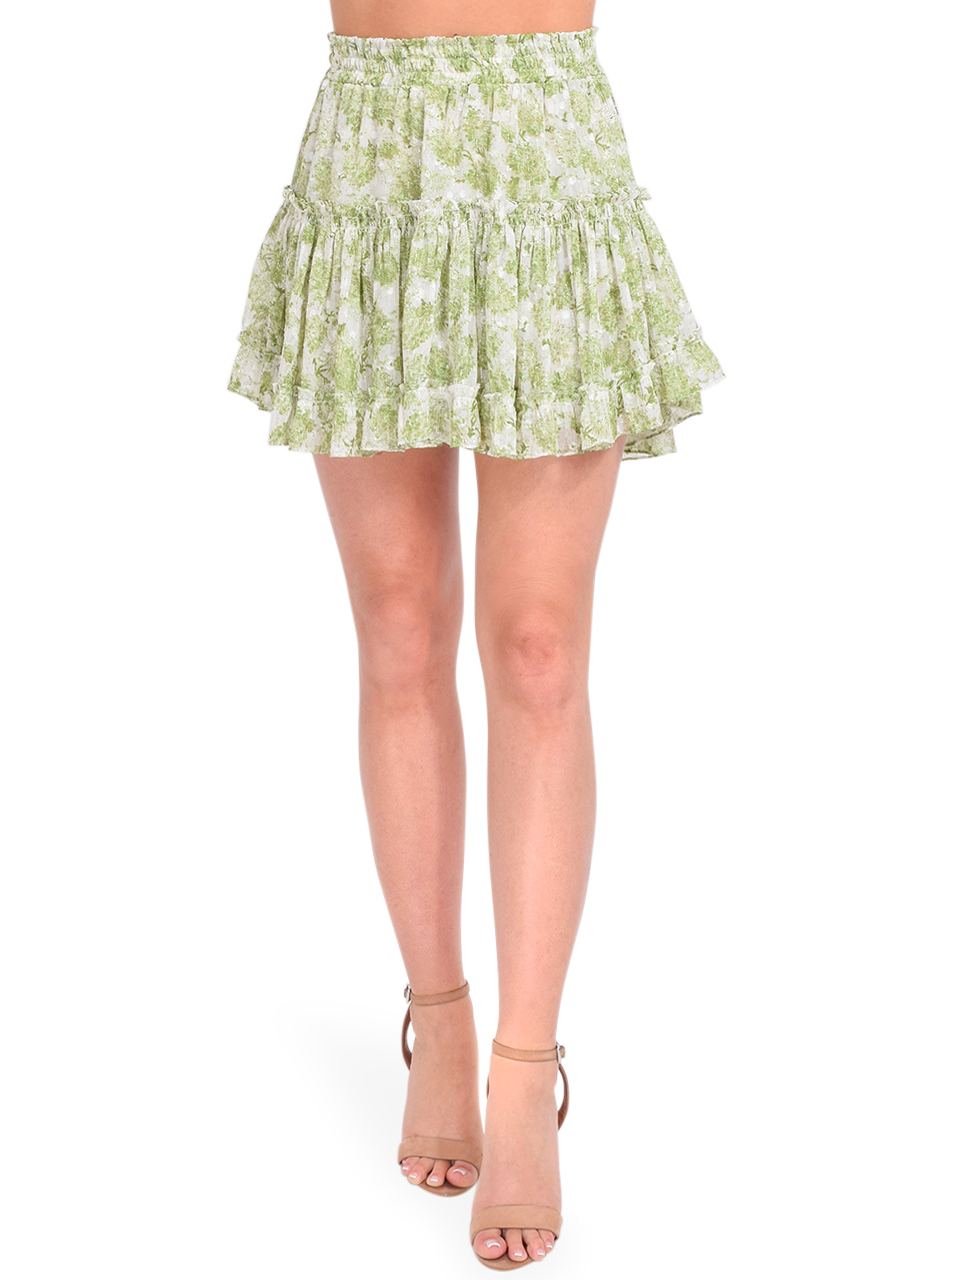 MISA Marion Skirt in Verdana Abstract Front View